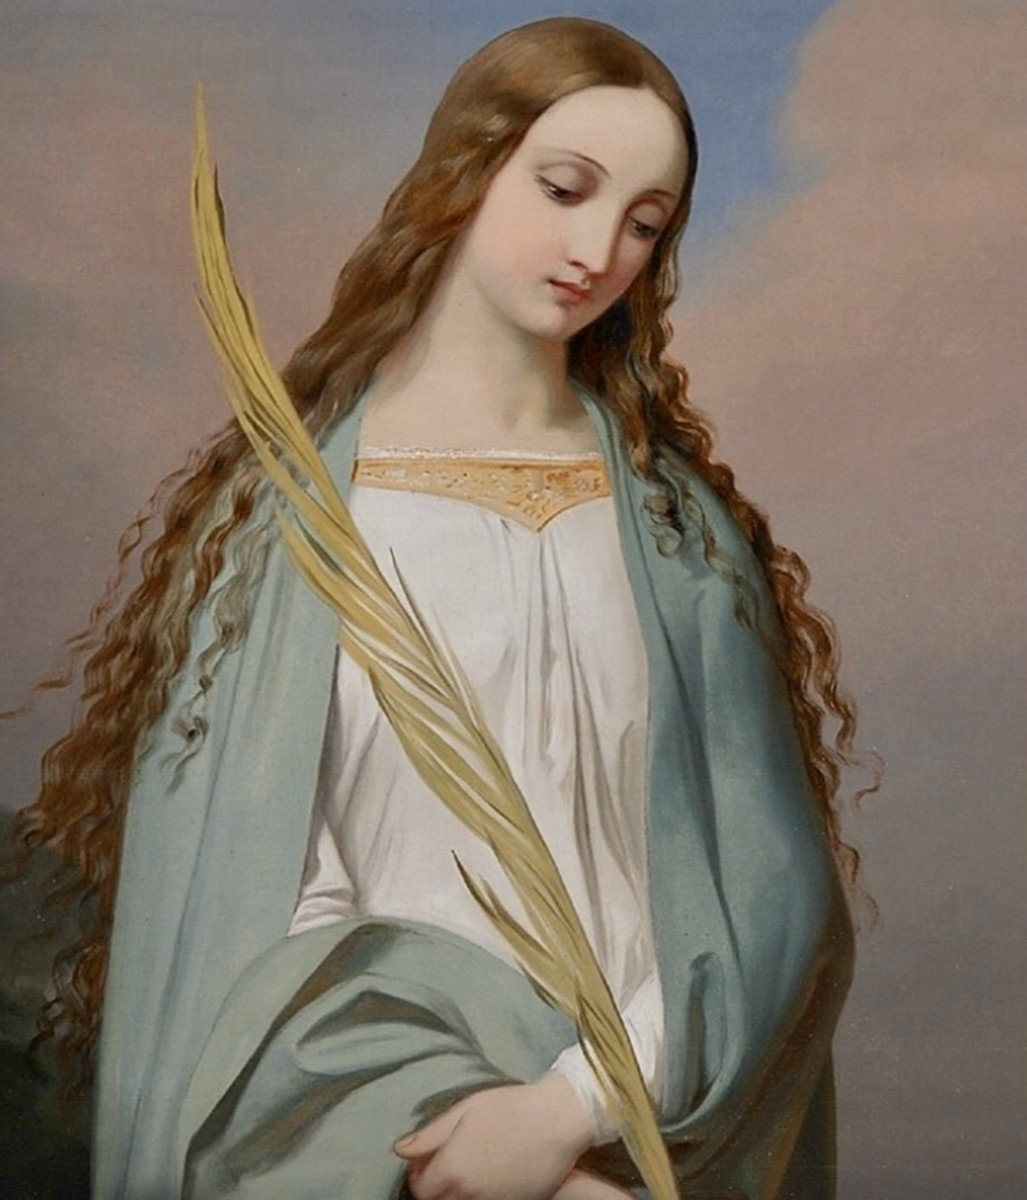 saint-agnes-and-the-queenly-virtue-of-fearless-suffering